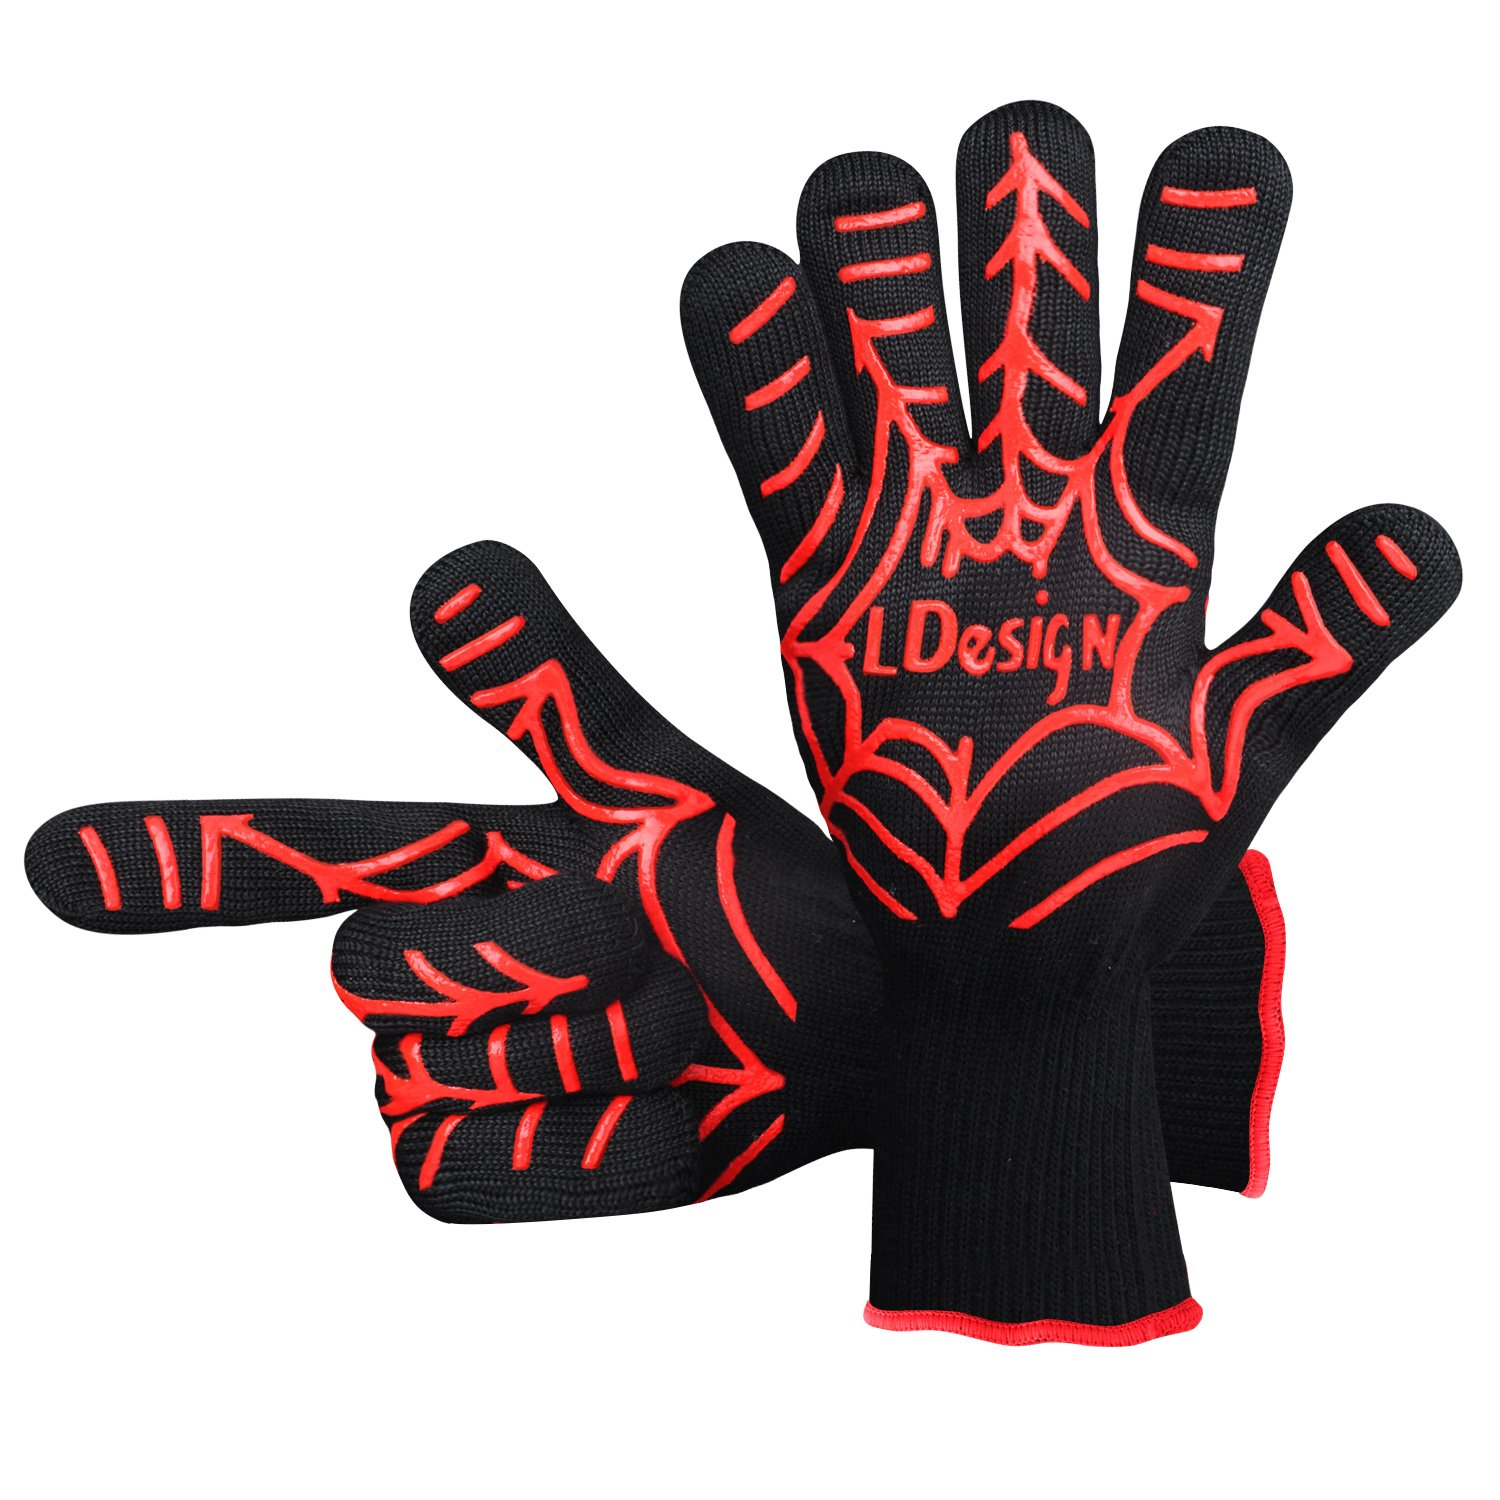 LDesign Oven Gloves, Heat Resistant Pot Holders Spider Shape Non-Slip Oven Mitts with Free Size